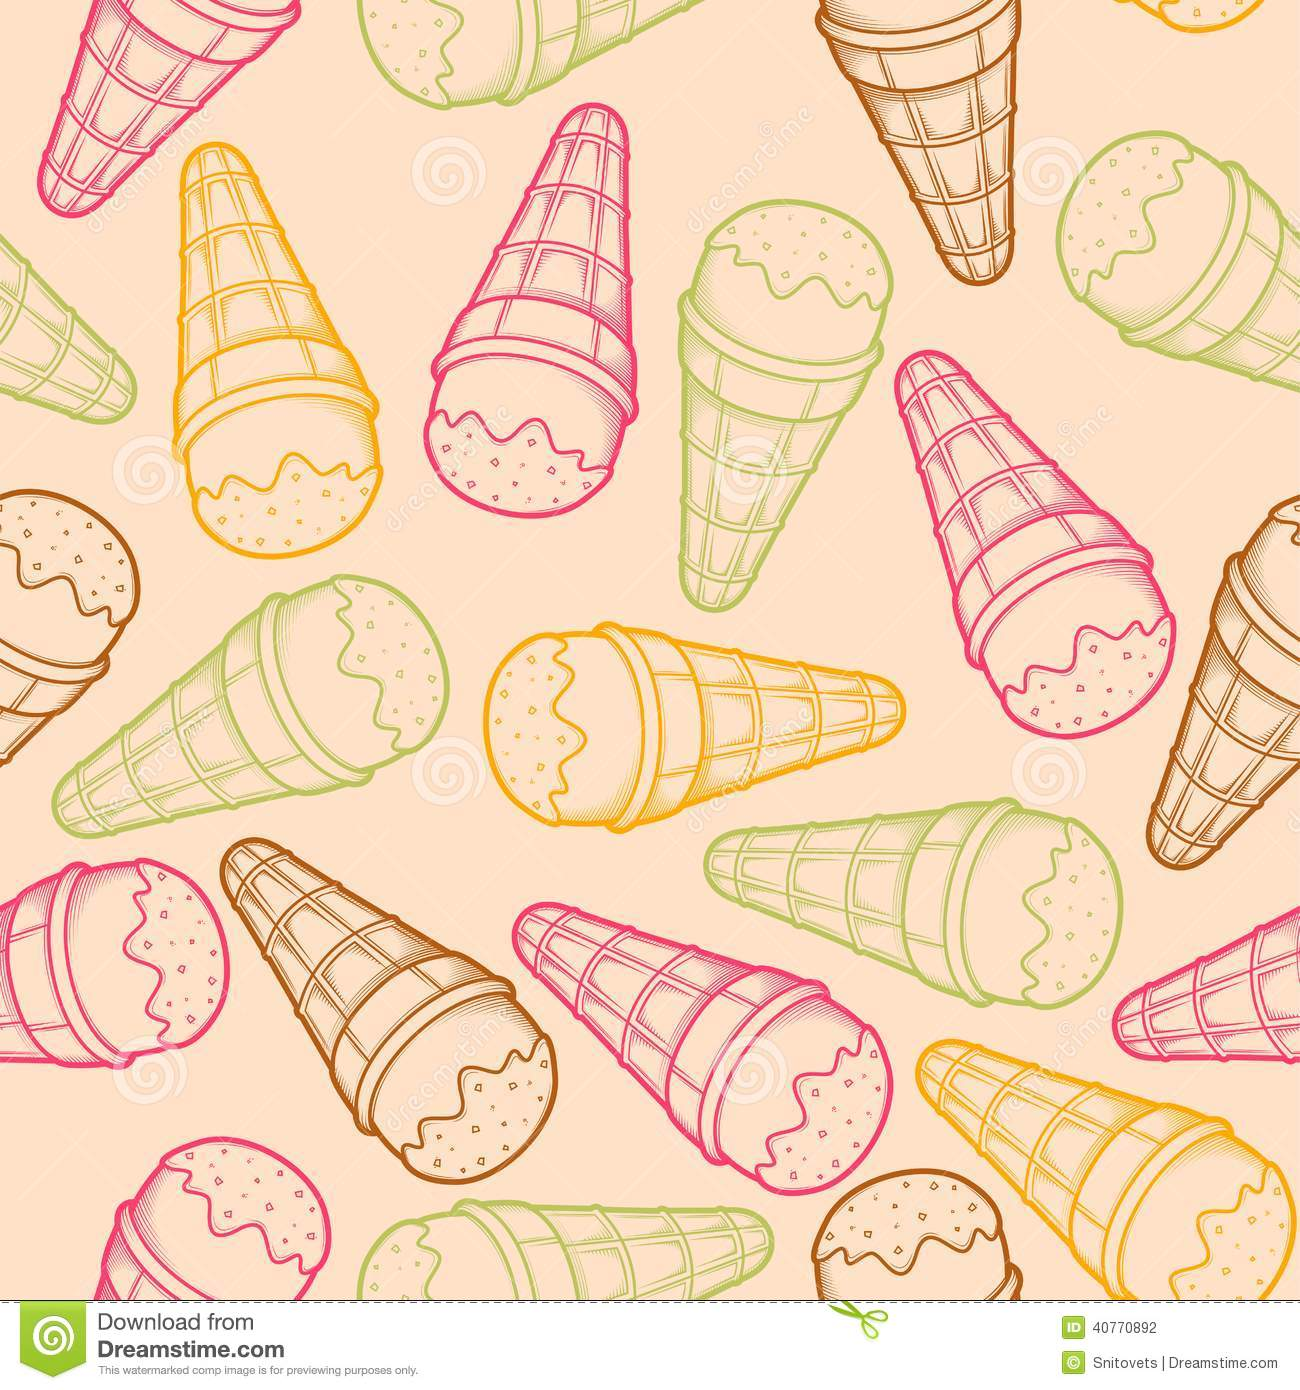 Ice Cream Cones Seamless Pattern Background Stock Vector: Detailed Graphic Ice Cream Cone Seamless Pattern. Colorful